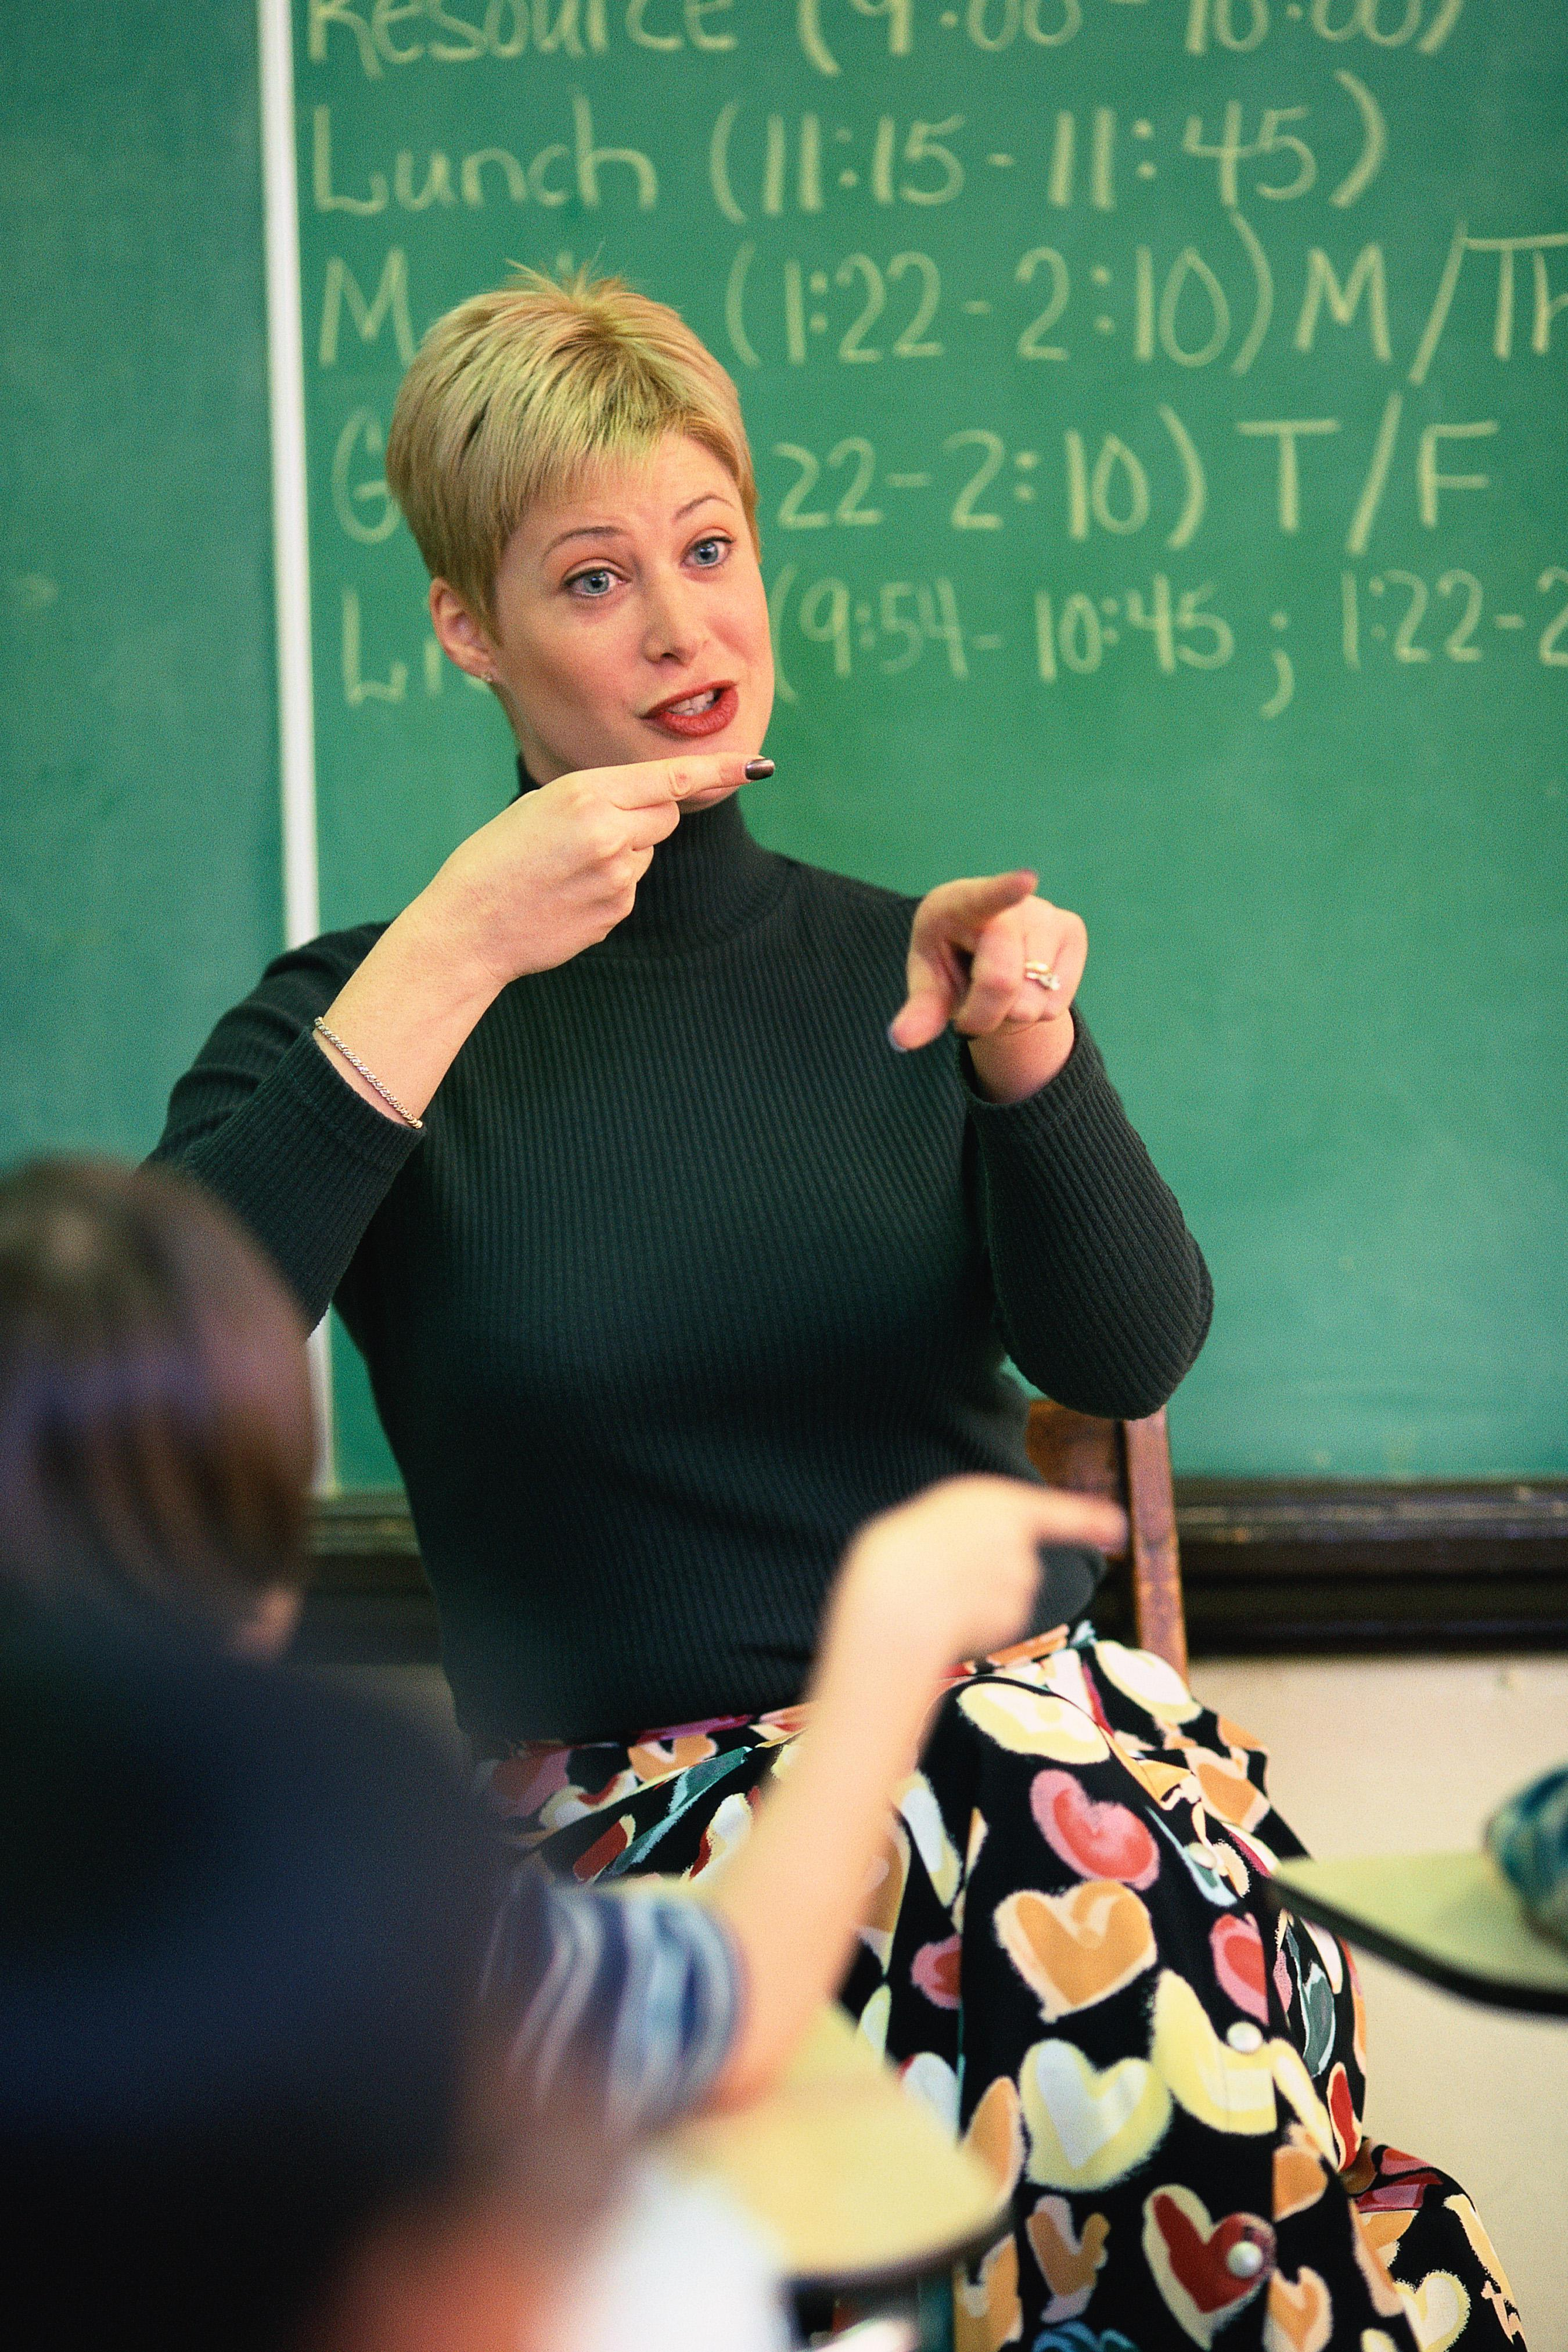 Teacher talking and pointing at front of classroom